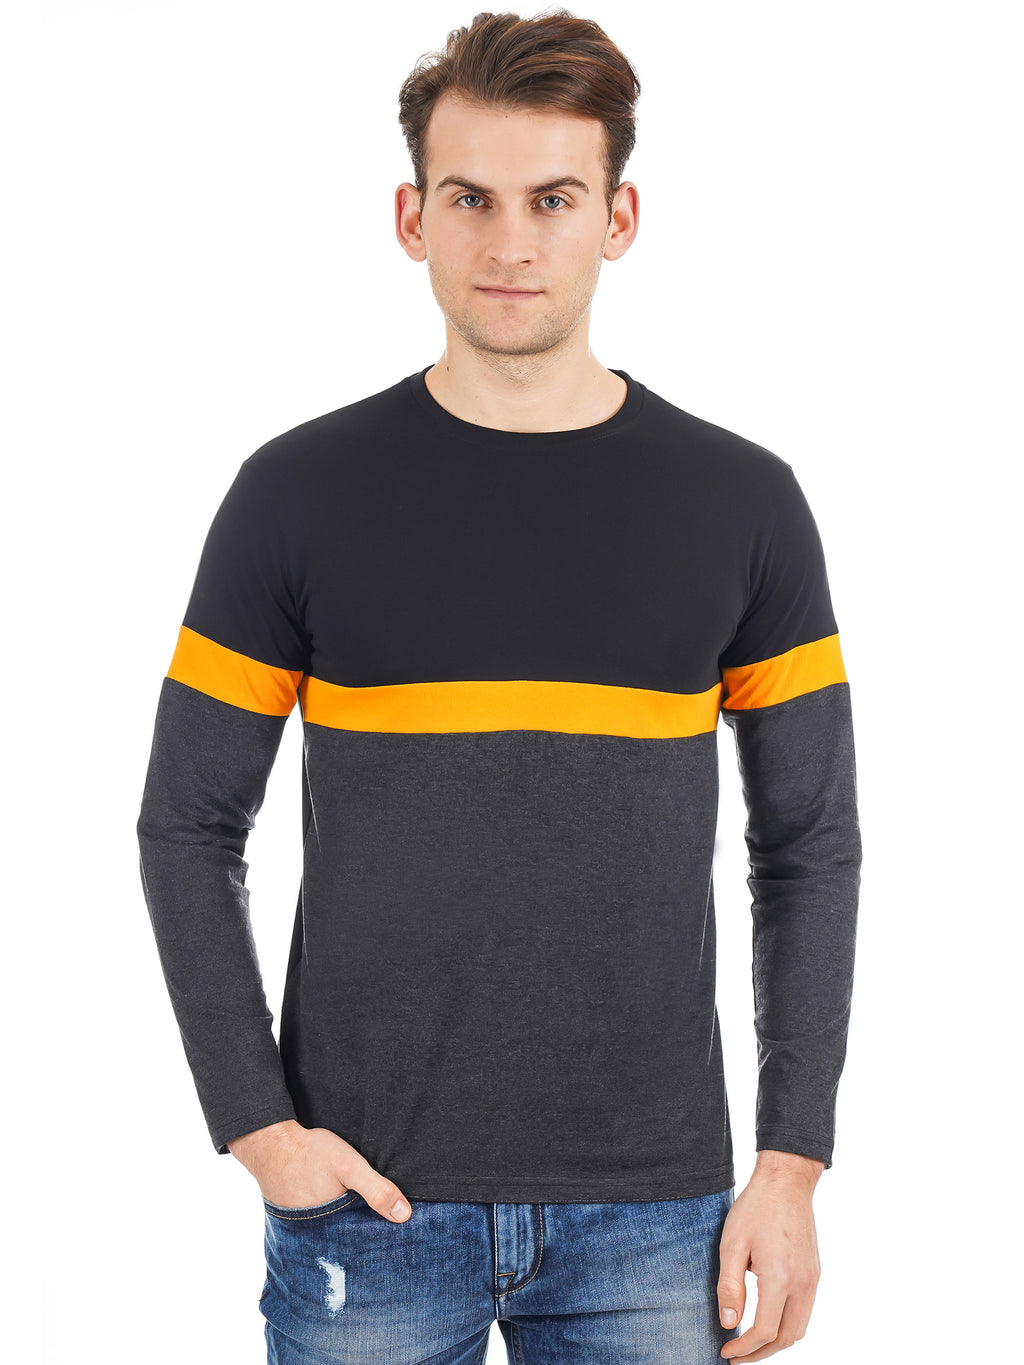 Rock Hooper Men's Full Sleeve Raglan Round Neck Cotton Black T-Shirt